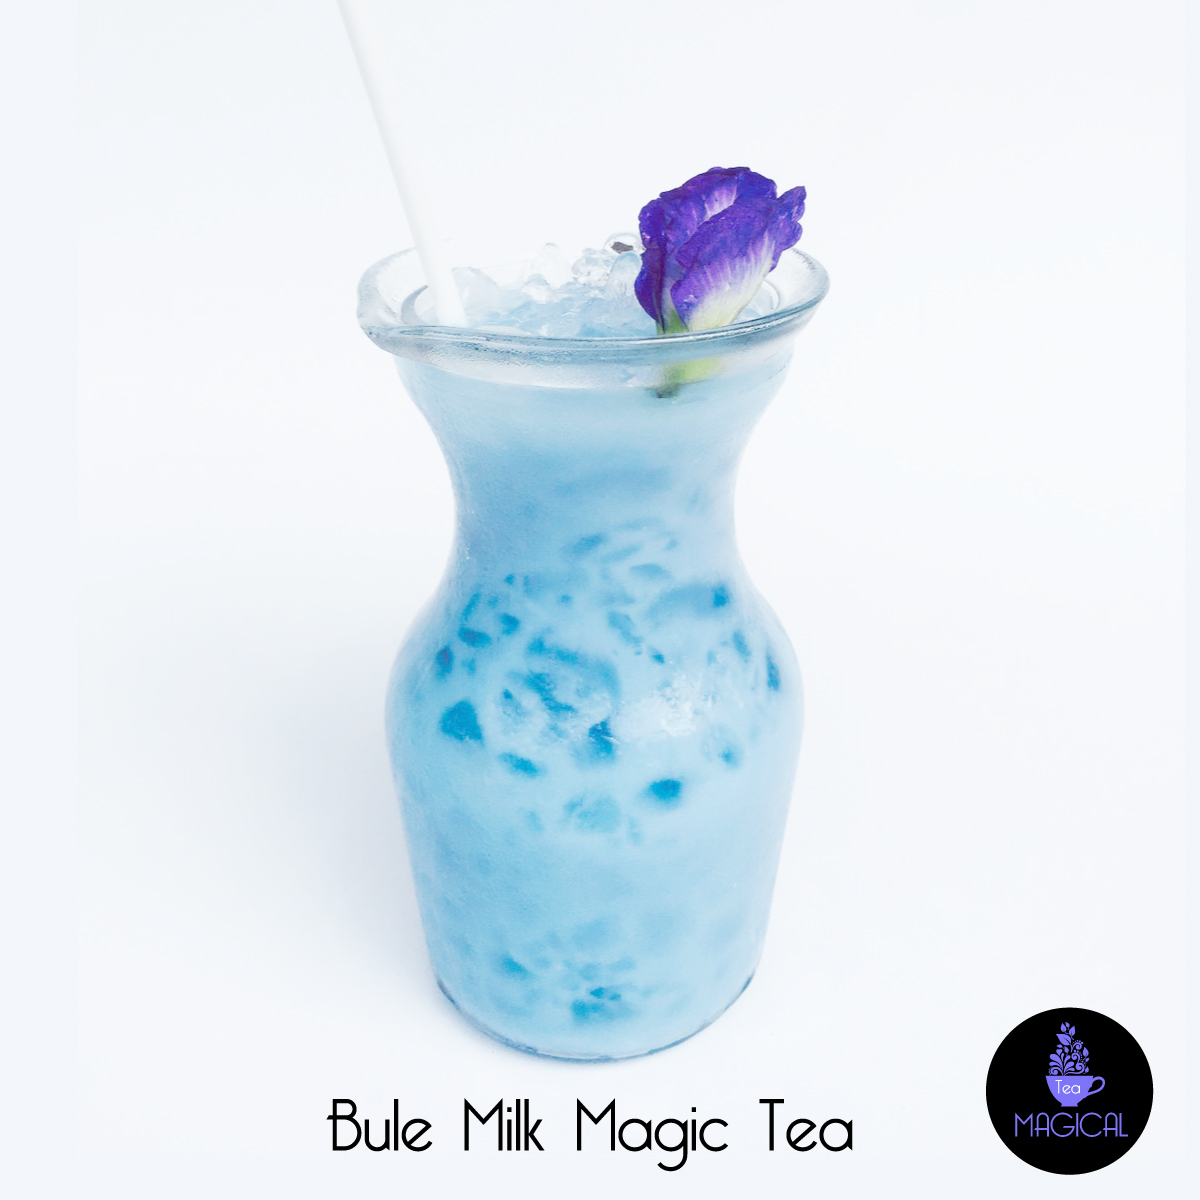 Blue Milk Magic Tea